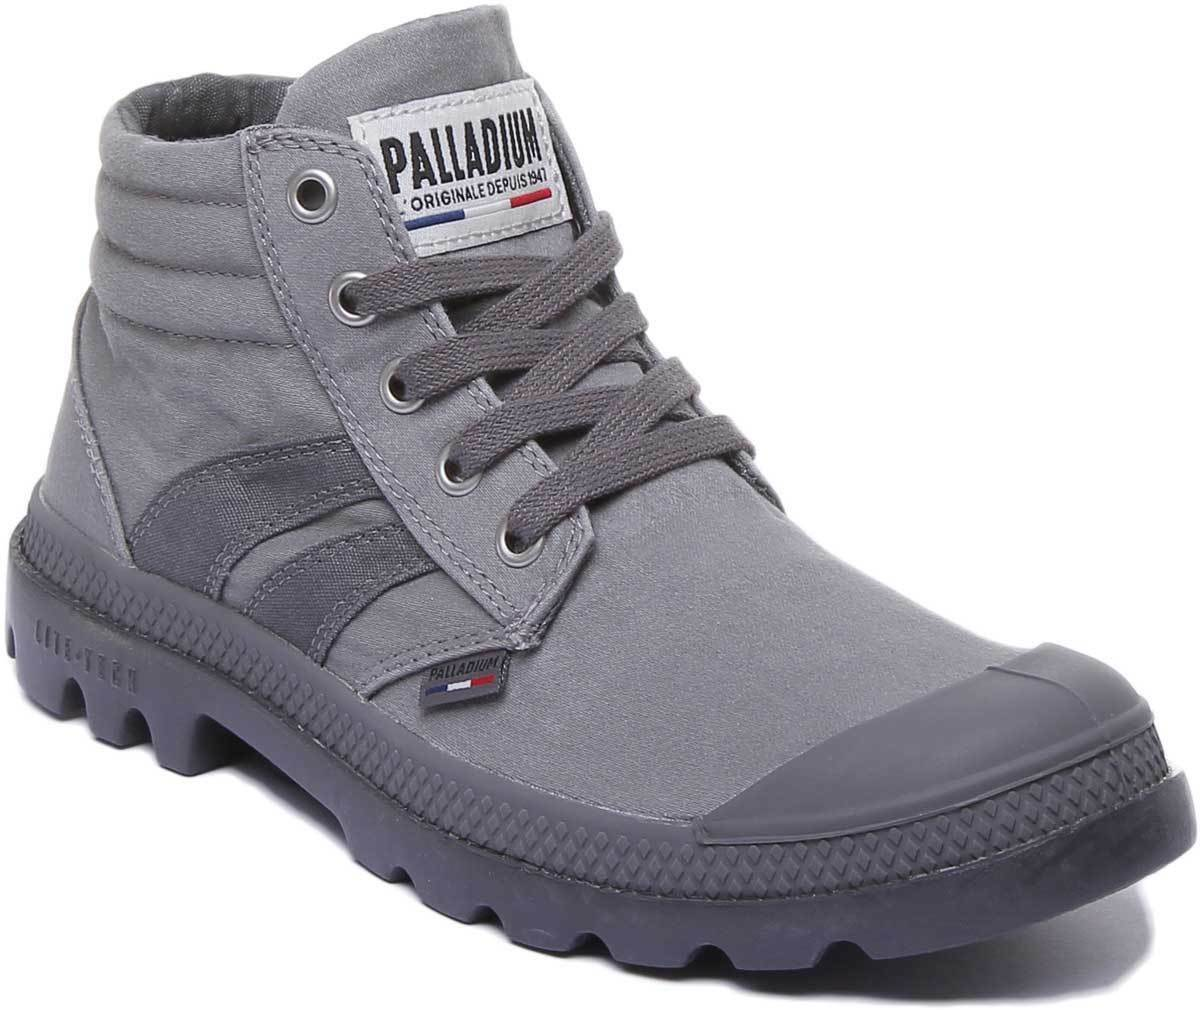 Palladium Retro Lite Supply Women Canvas Stone Lace up Ankle Boots UK Size 3 - 8